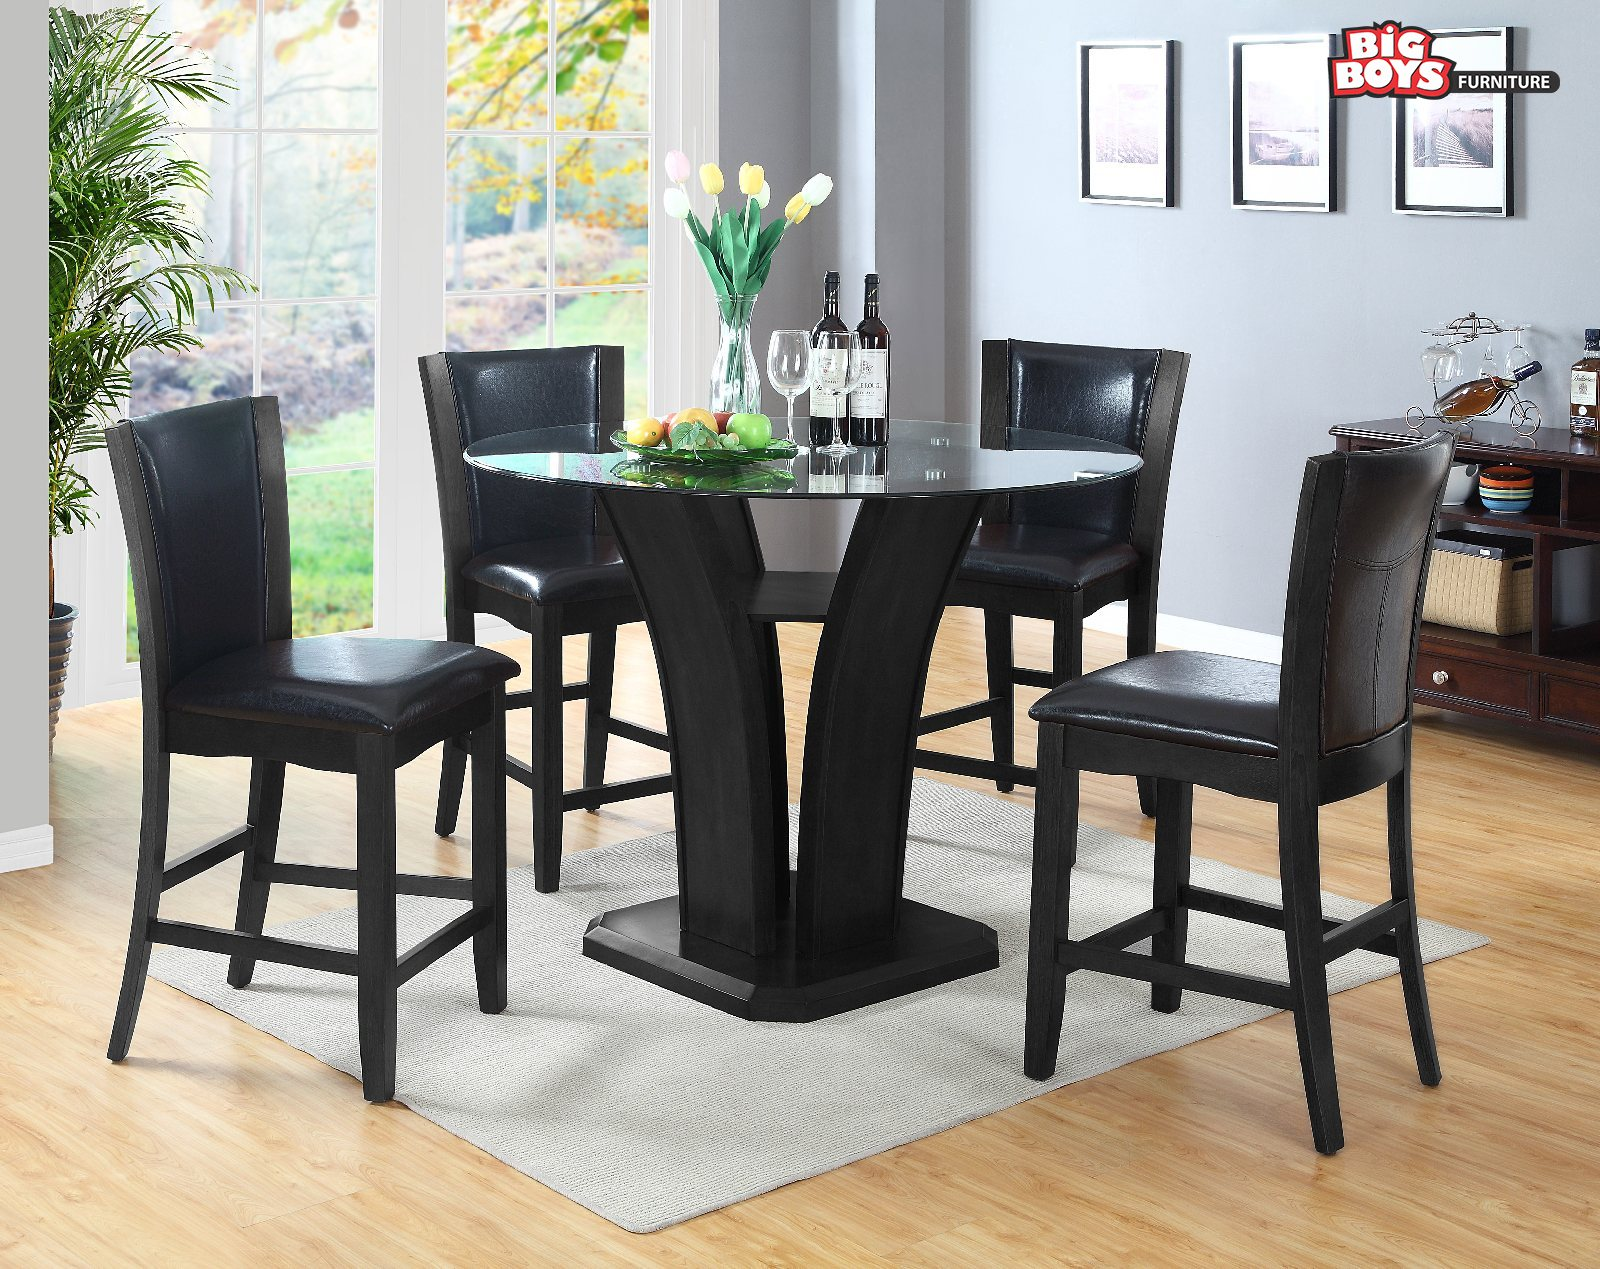 Nice Set of Center table and chairs at best prices